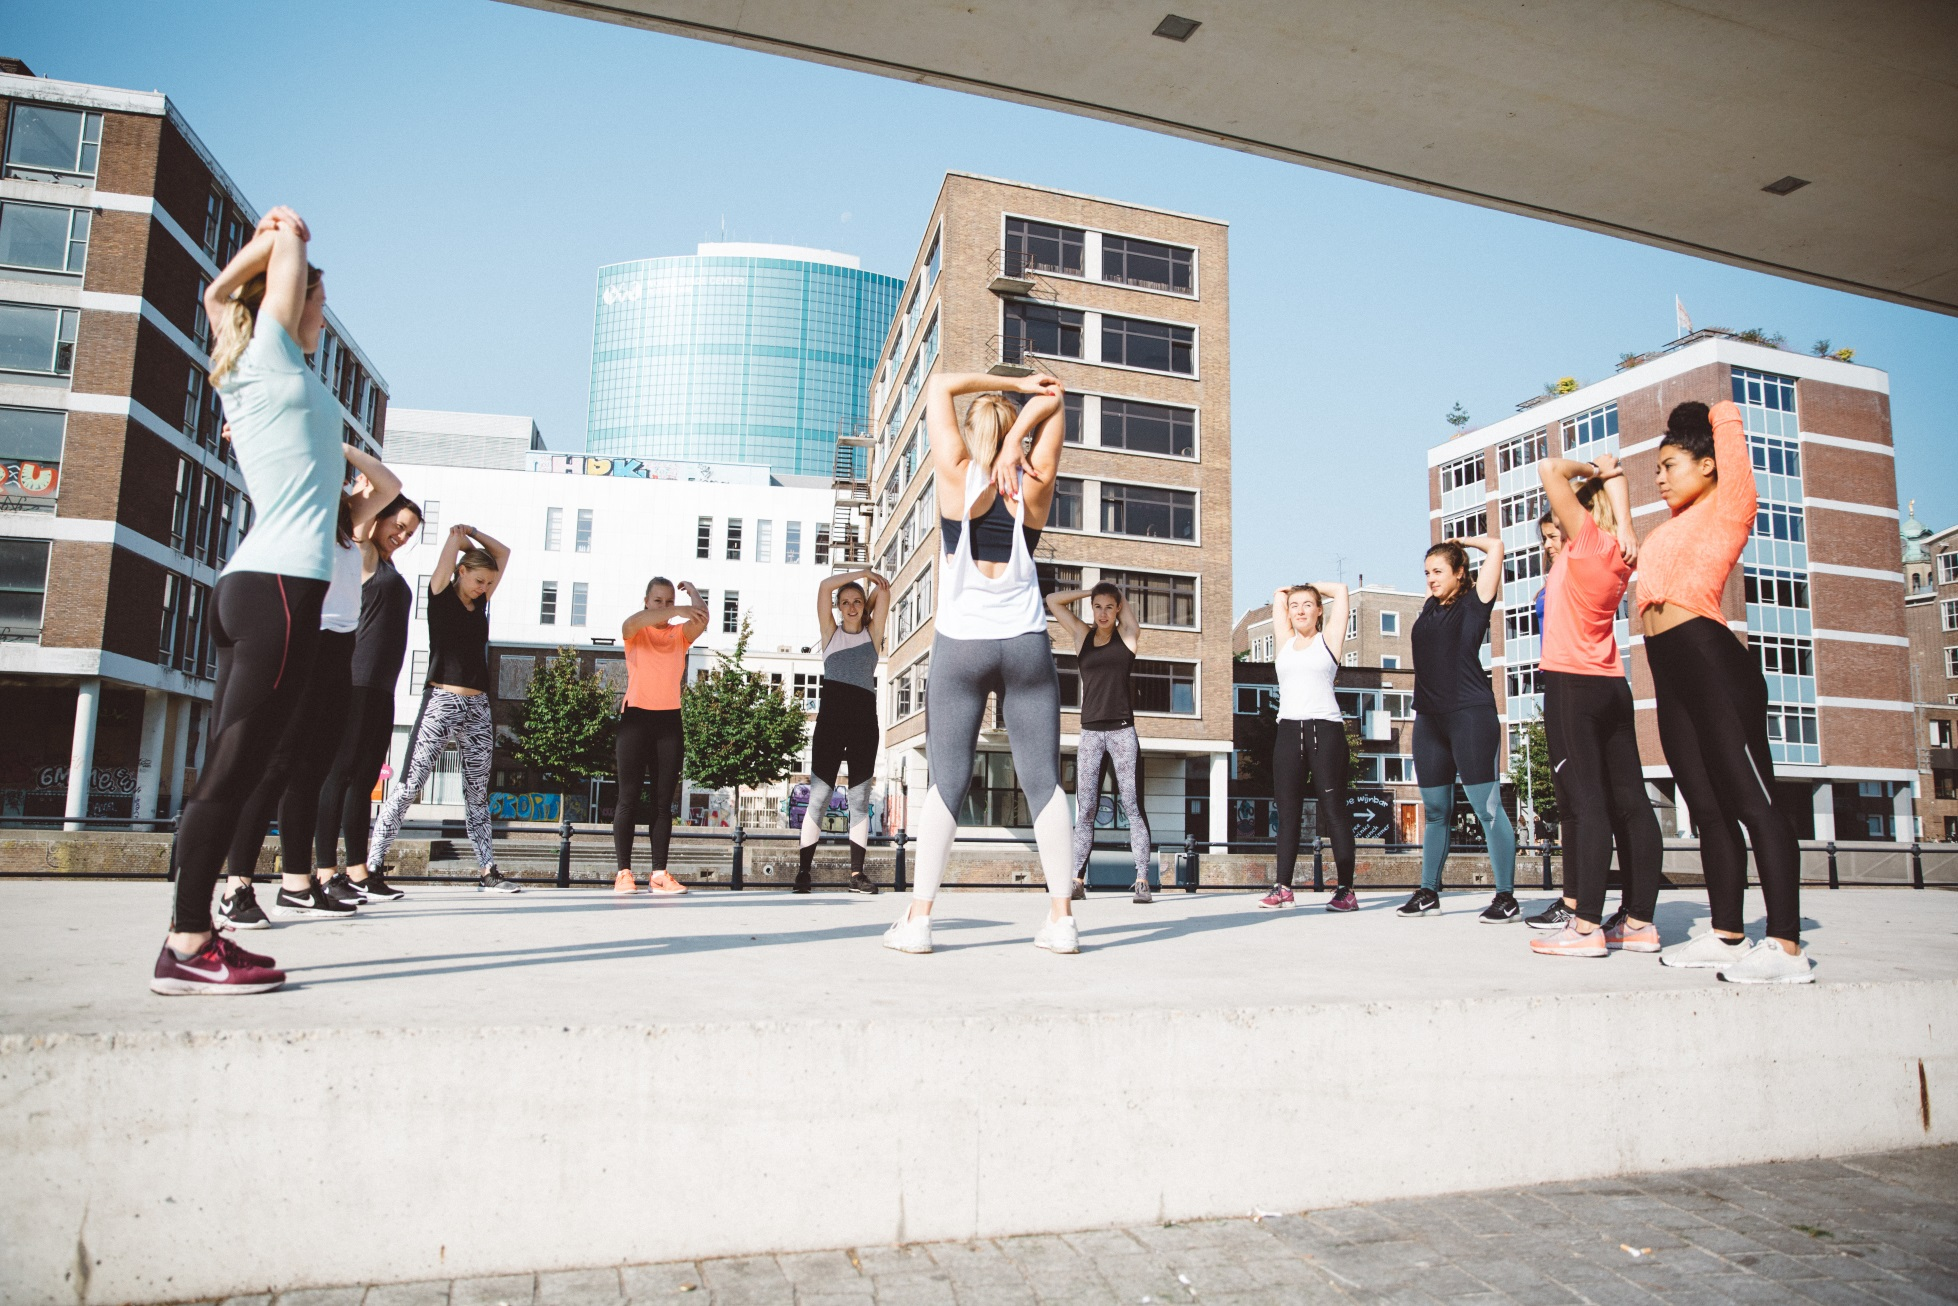 De Happy Fit Challenge bootcamp Rotterdam - Challenge